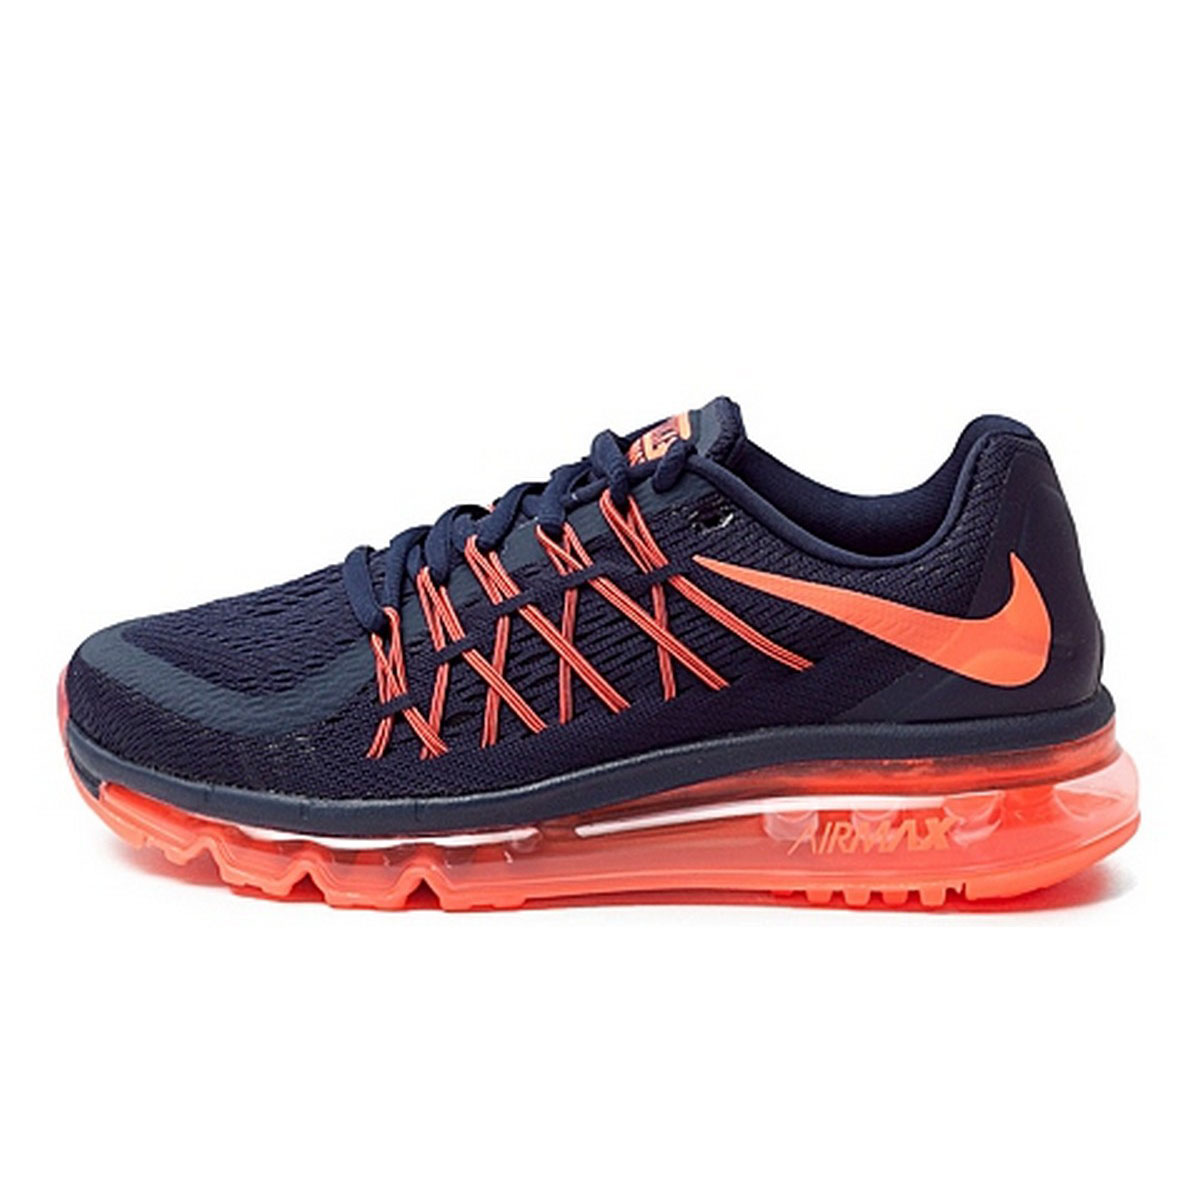 factory authentic a6db7 65fad NIKE tenisice WMNS NIKE AIR MAX 2015 698903-408 ...